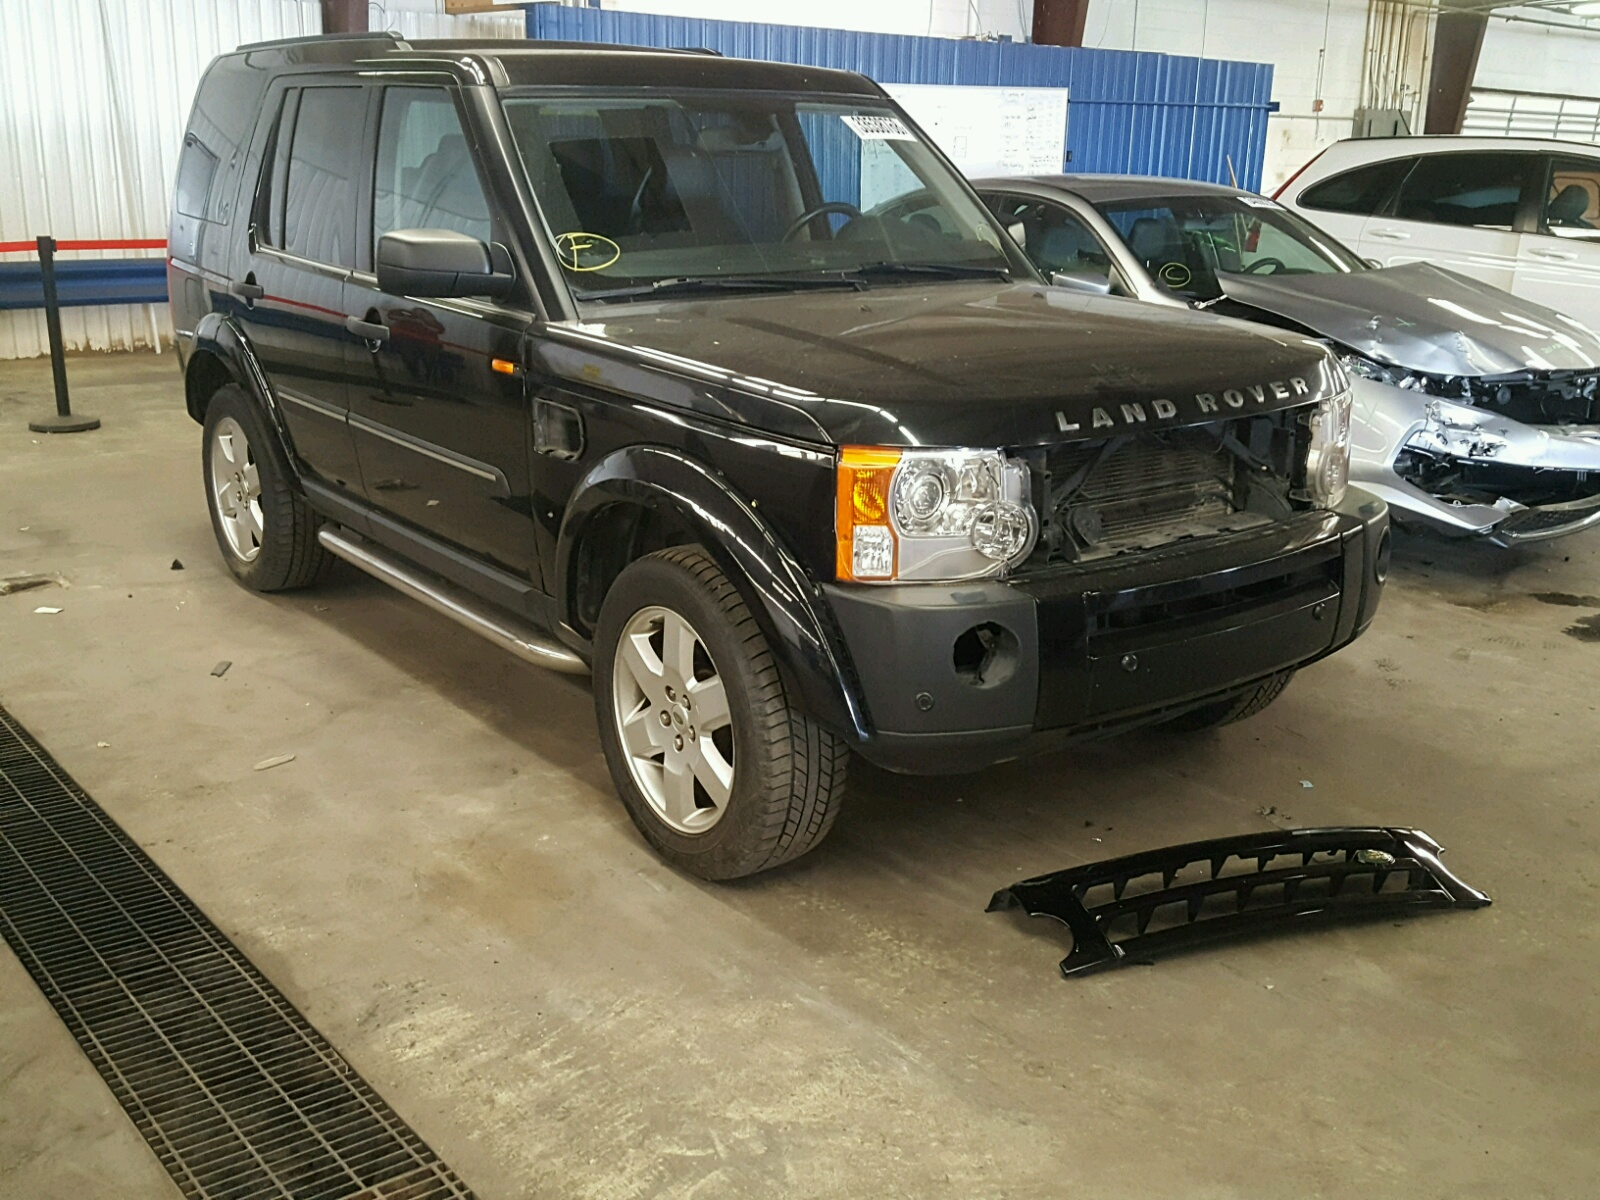 cert sale in salvage rover lot for auto of landrover black view auctions online carfinder en title des copart land moines ia hse on right